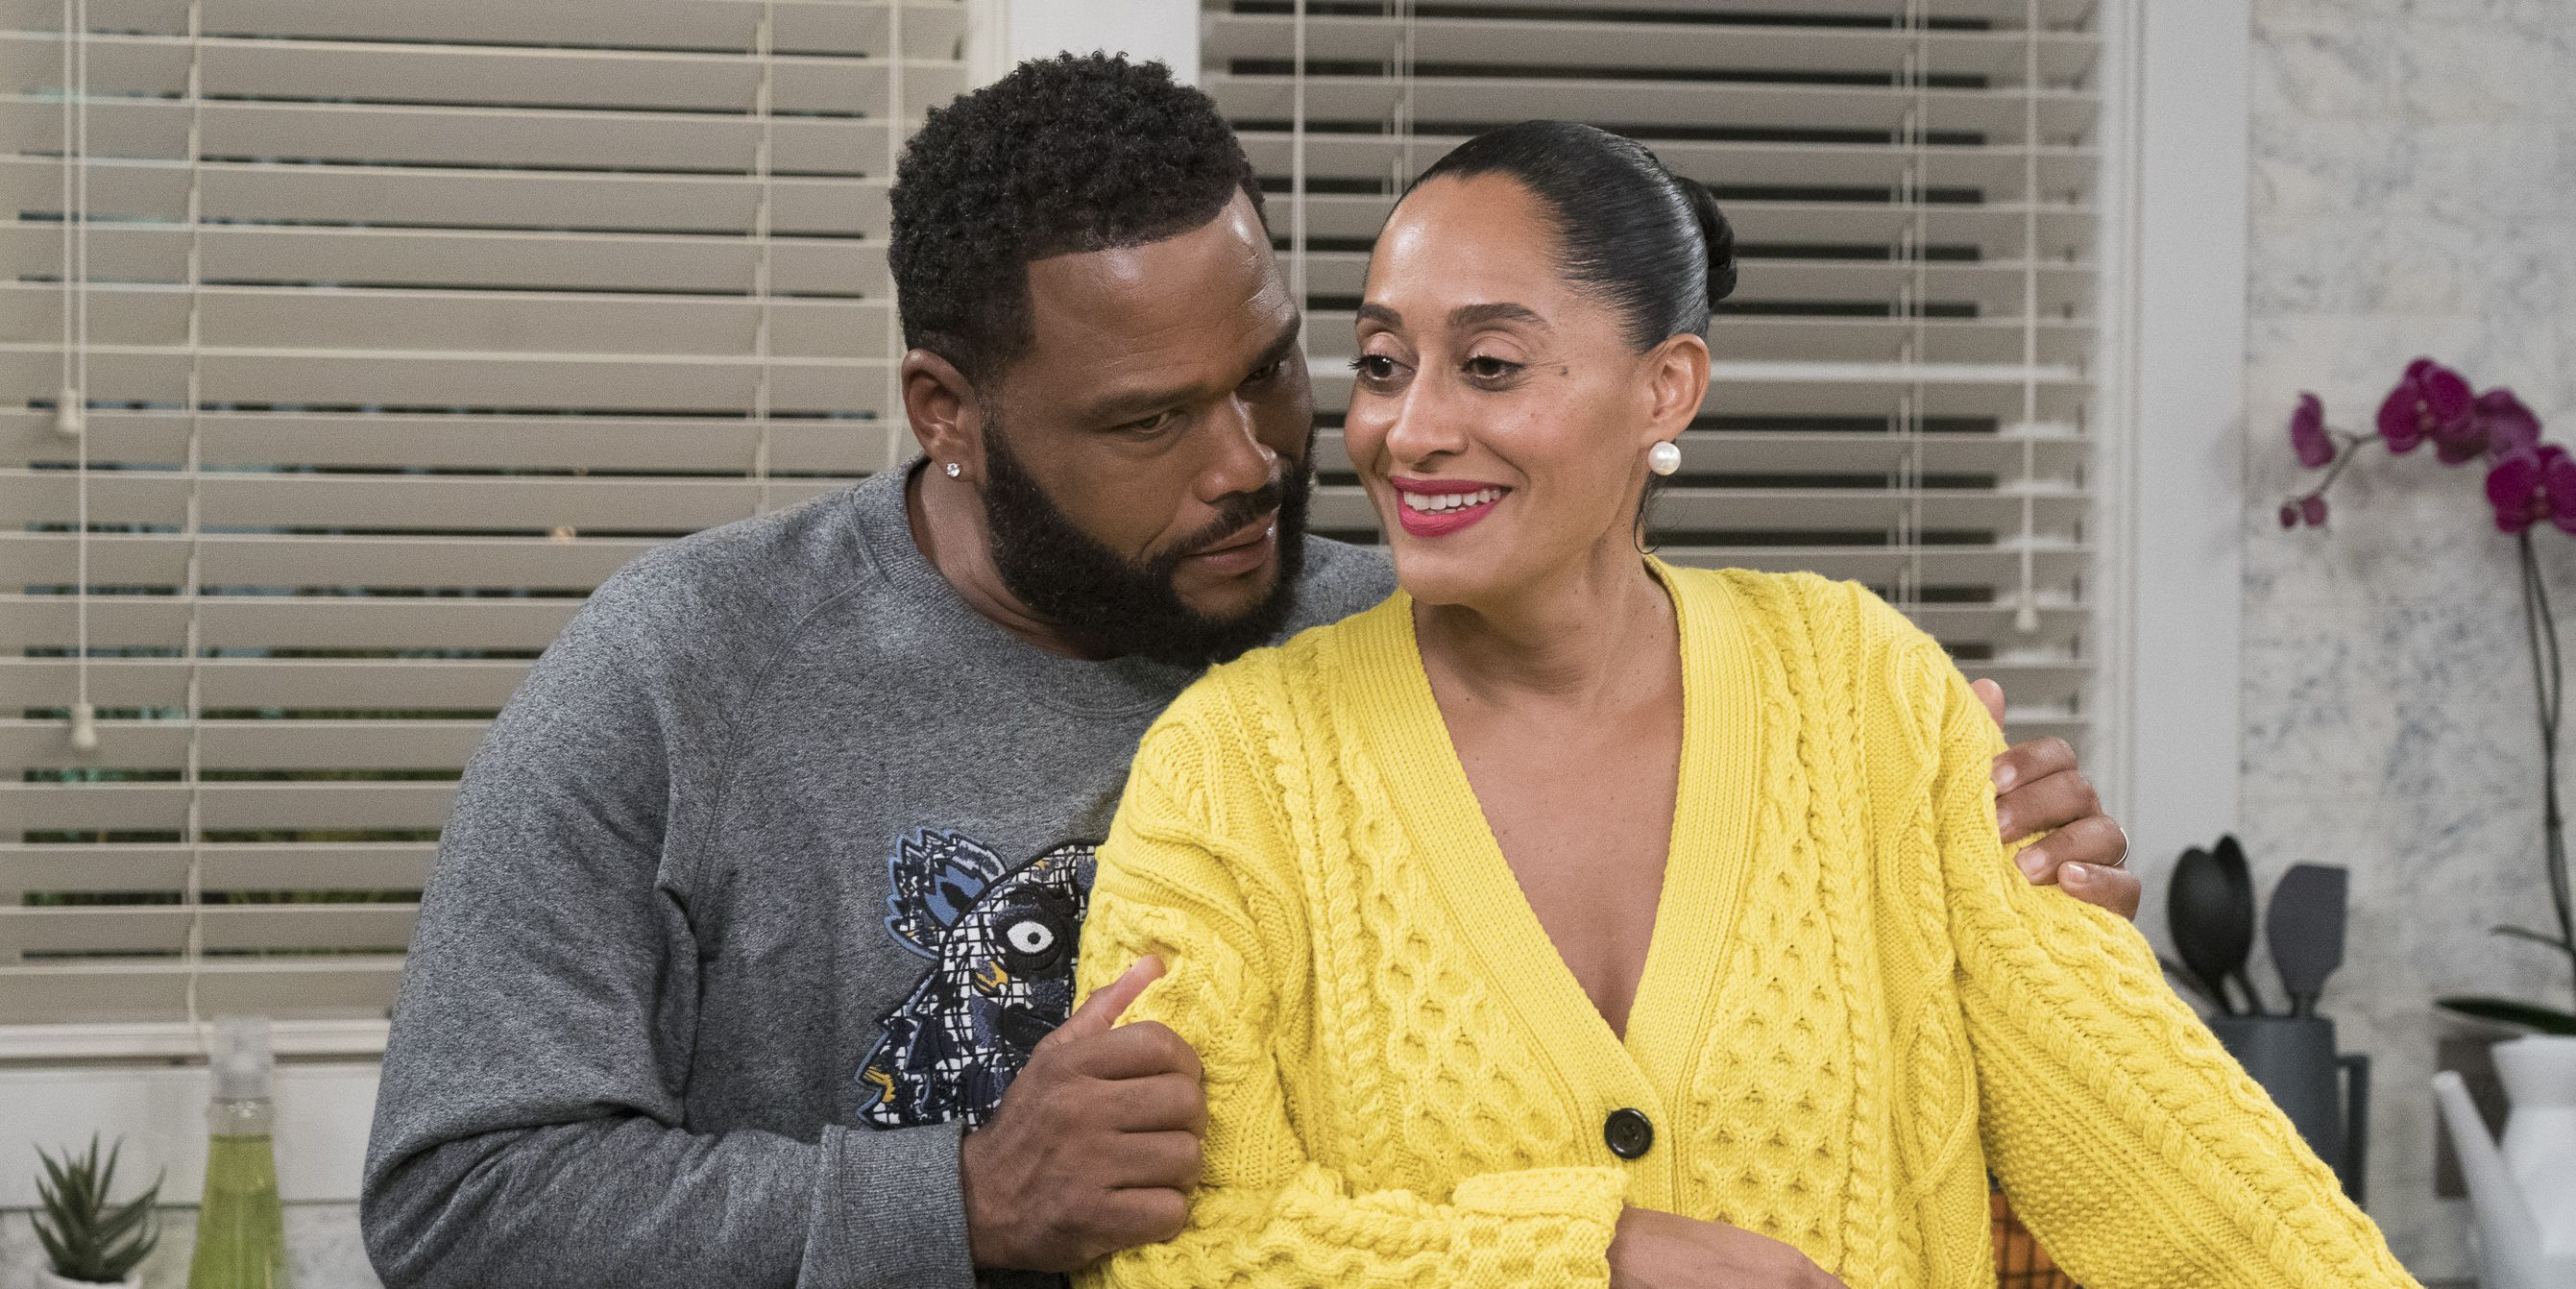 Tracee Ellis Ross May Soon Star in Her Own Black-ish Spin-Off